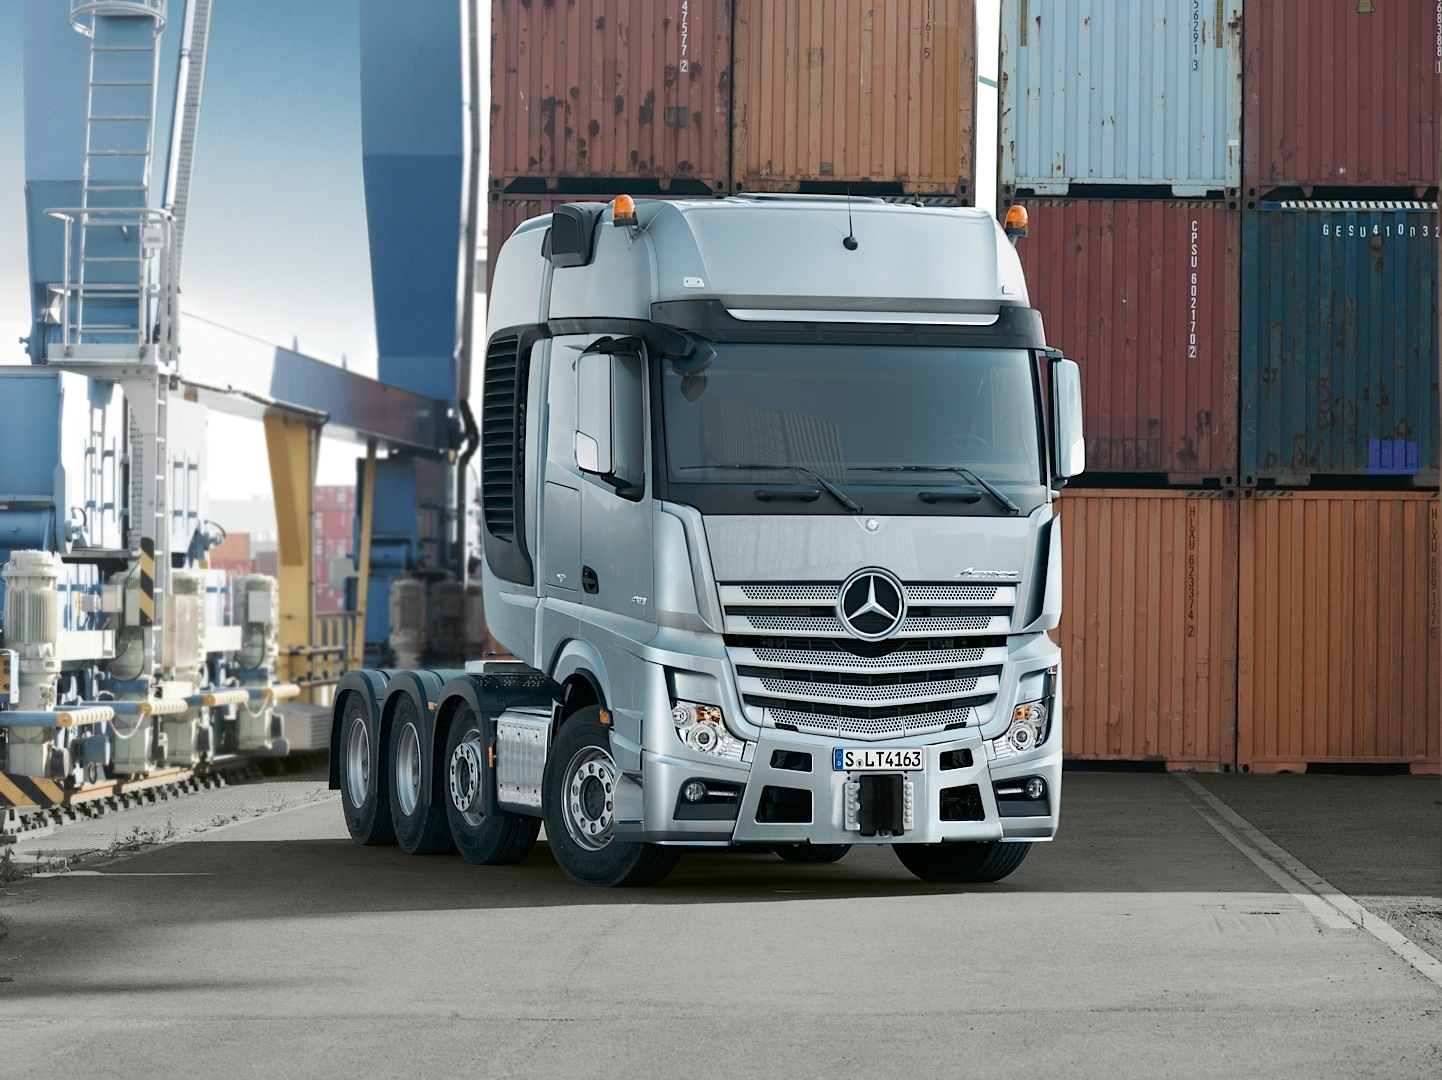 The Mercedes Benz Actros Slt Can Haul 250 Tons Of Anything